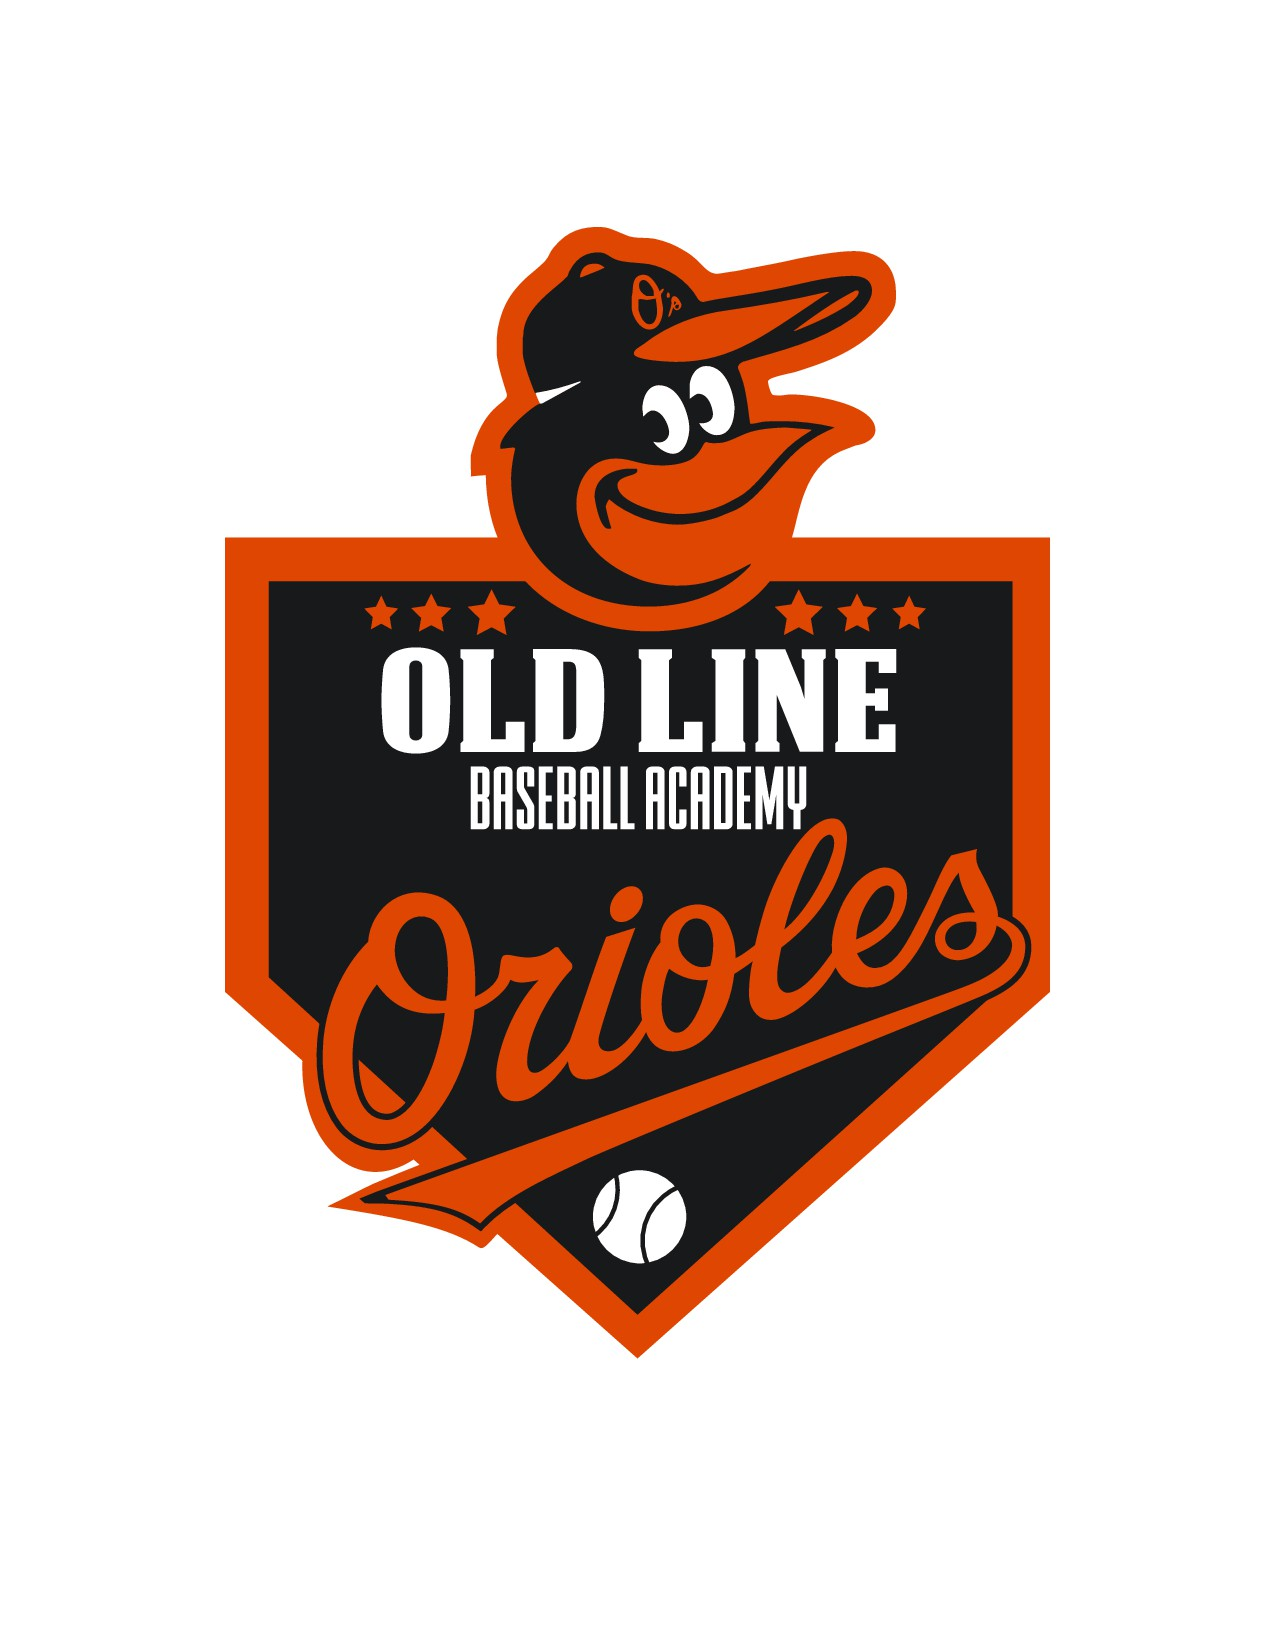 Orioles Youth Baseball Academy needs a start up logo and site